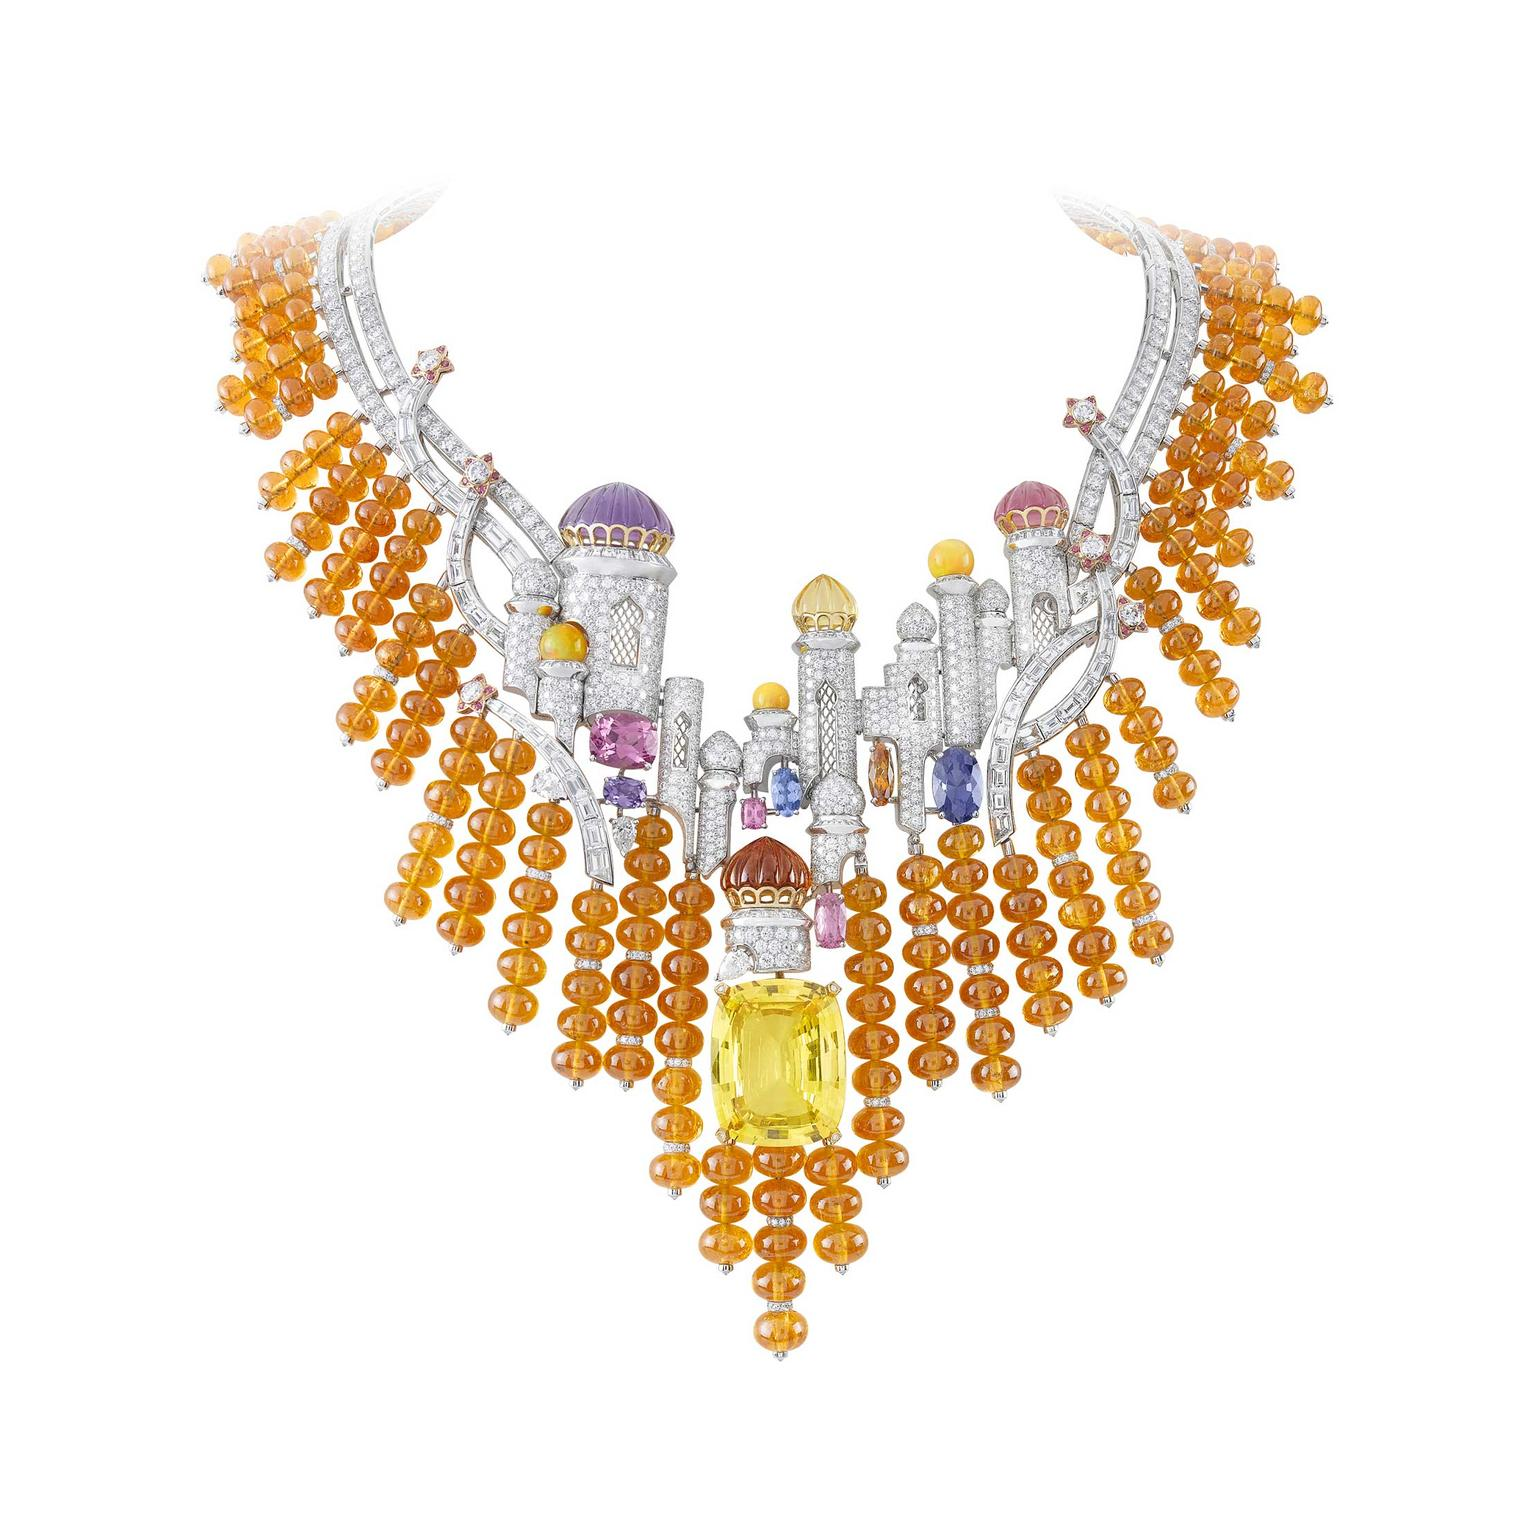 Van Cleef & Arpels Izmir necklace from Bals de Legende collection